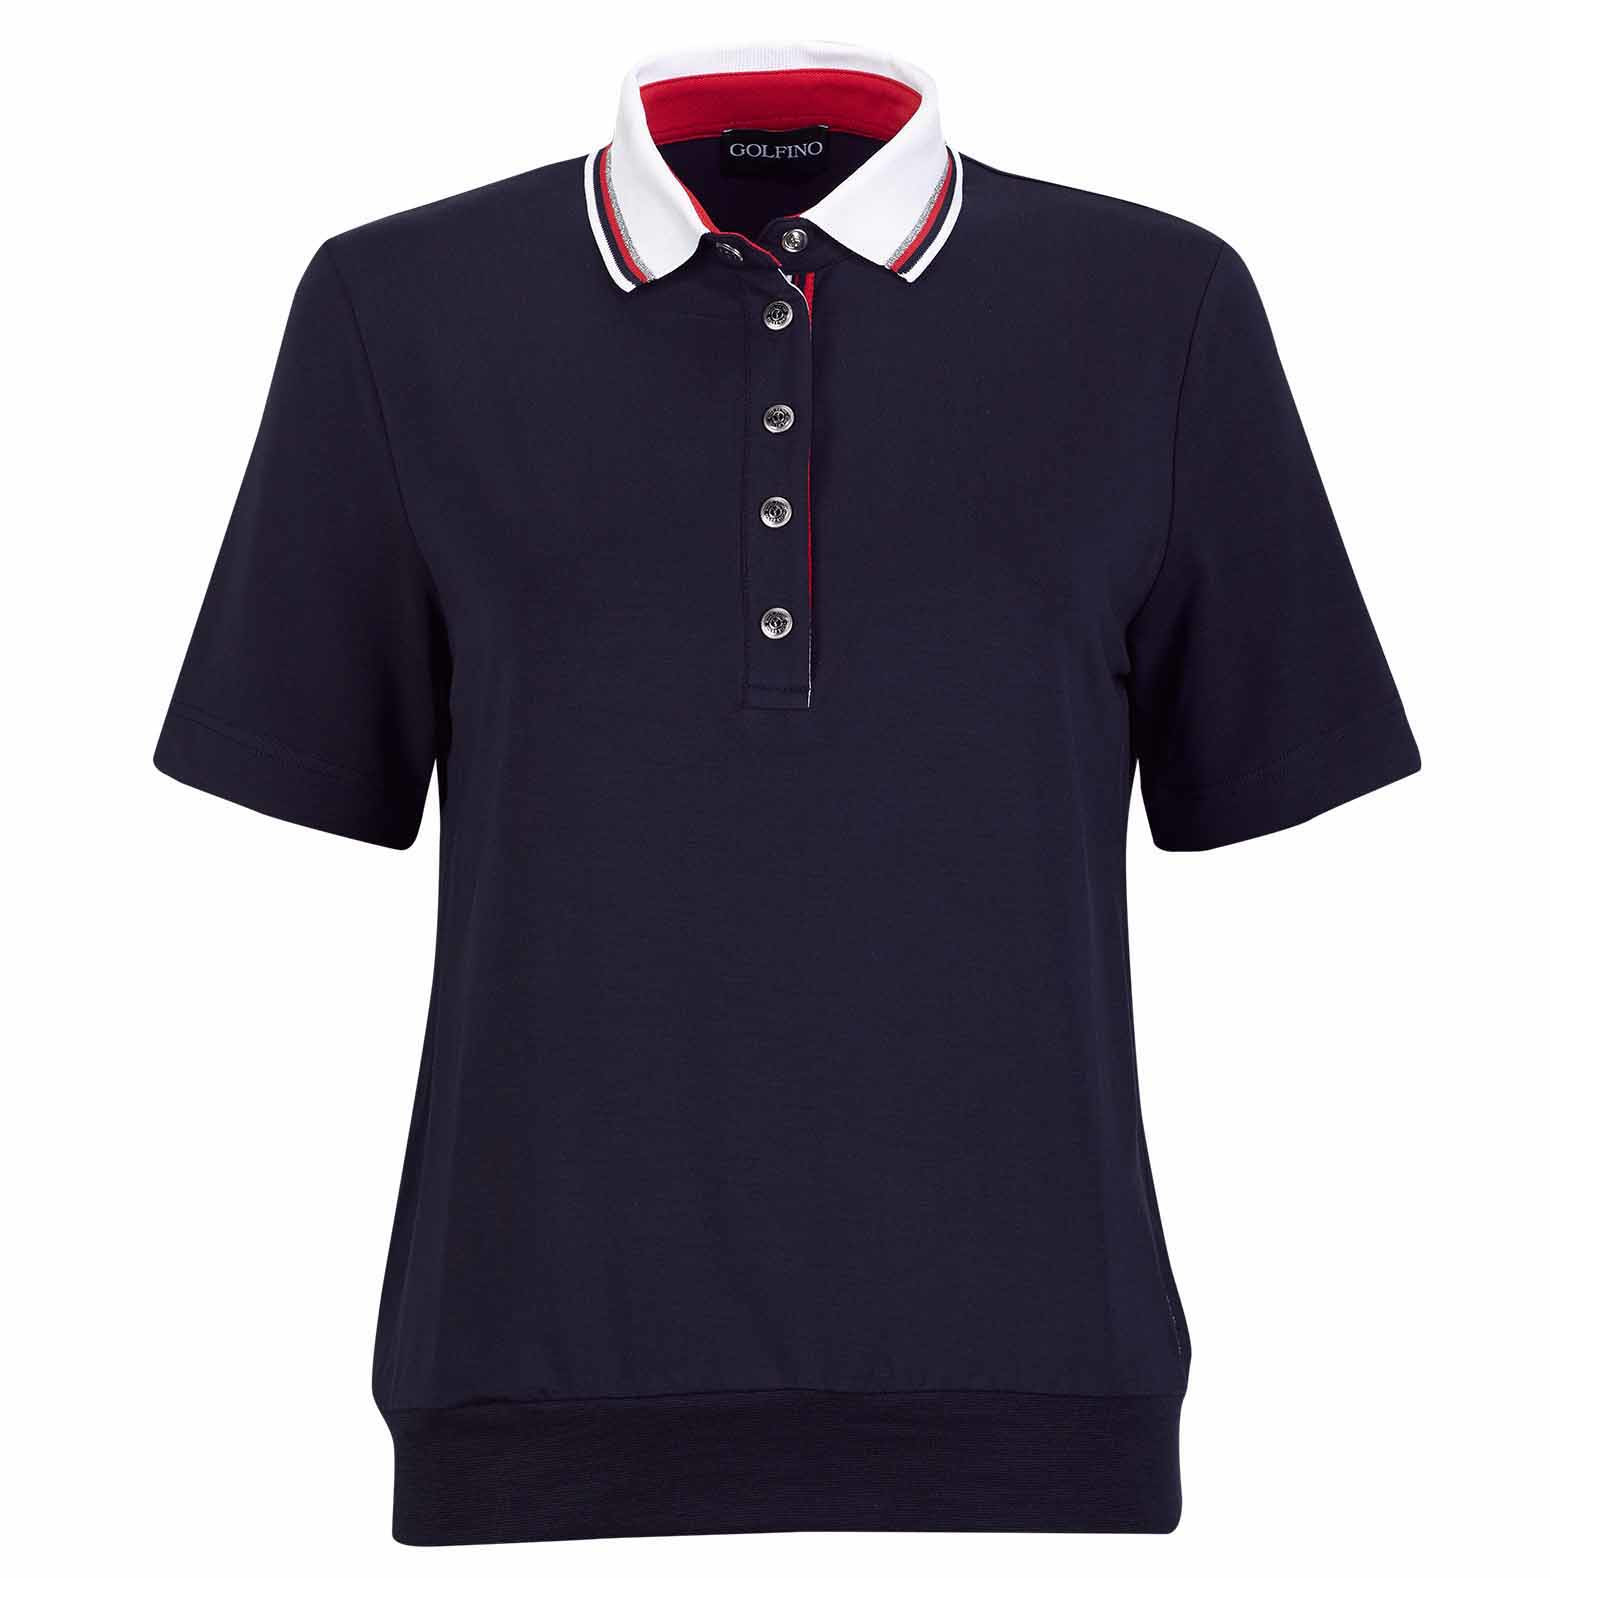 Damen Kurzarm Golfpolo mit Extra Stretch Komfort in Loose Fit